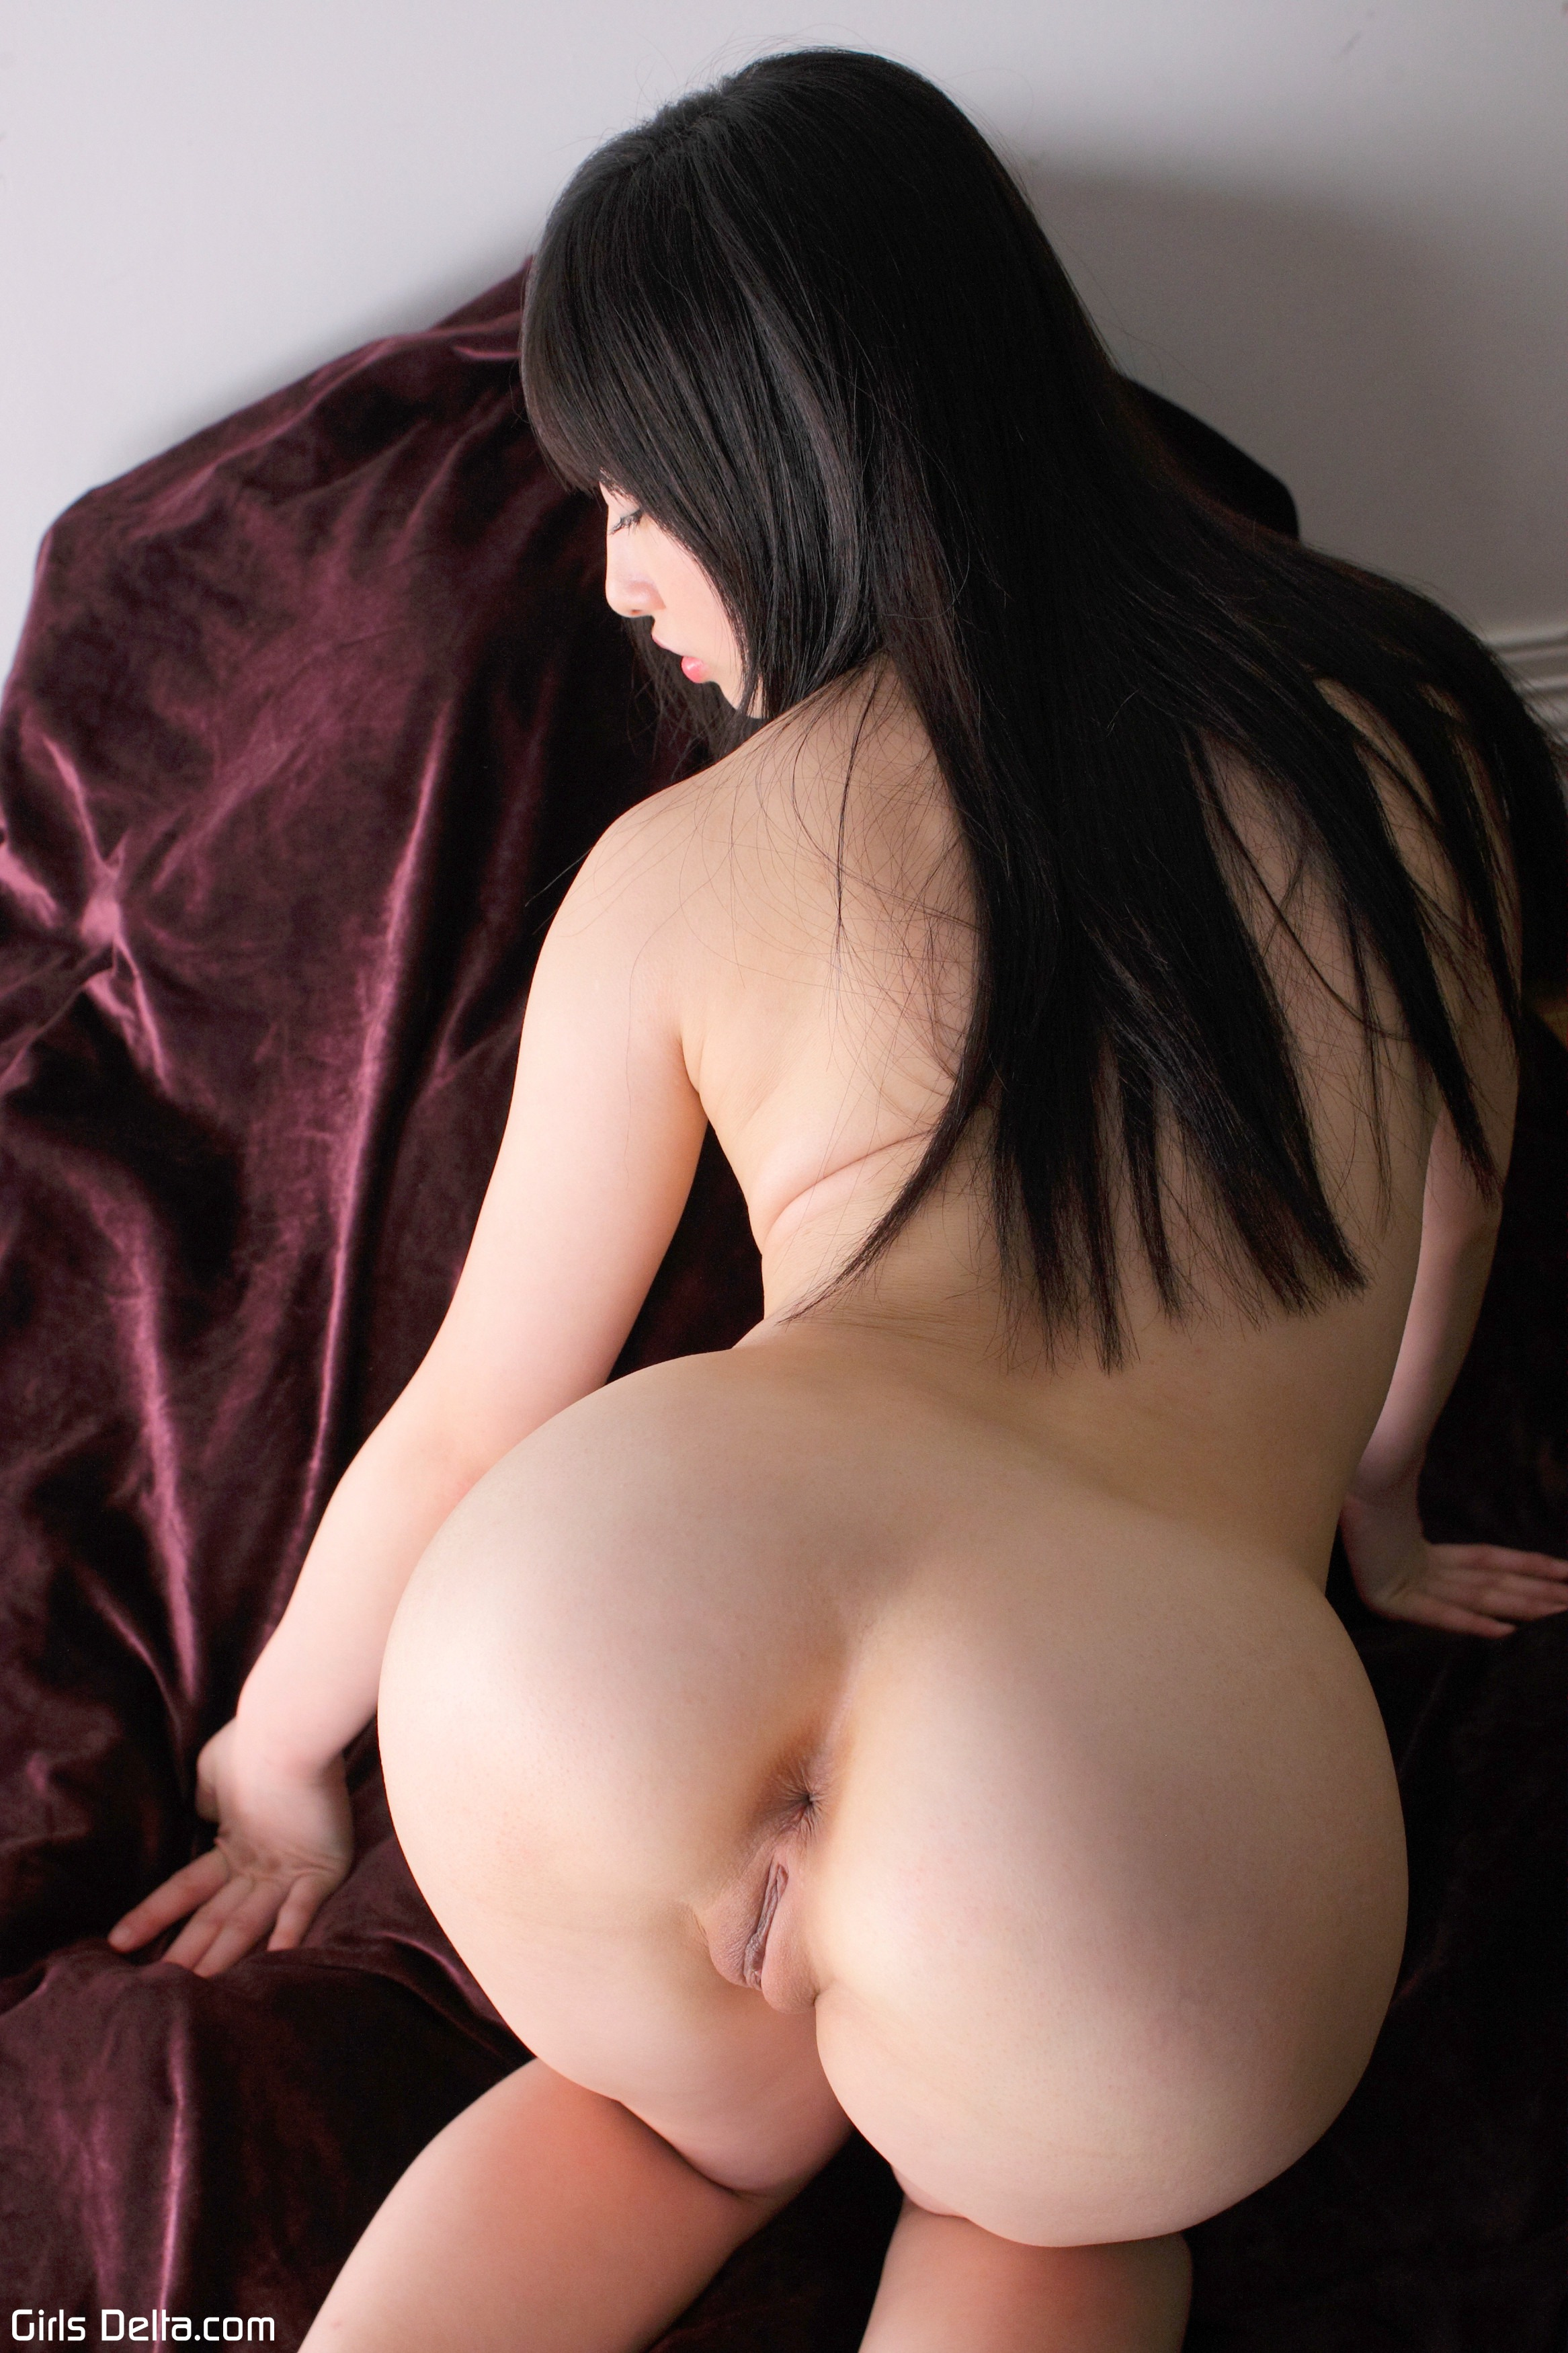 papua new guinea adult mobile chat #asian #asianass #asianpussy #asians #babe #babes #bush #chinese #cutegirl #gorgeous #horny #hot #hot #hottest #hottie #japan #japanese #korean #petite #psfb #sexy #slut #wanttocuminher #wetandmessy #wow